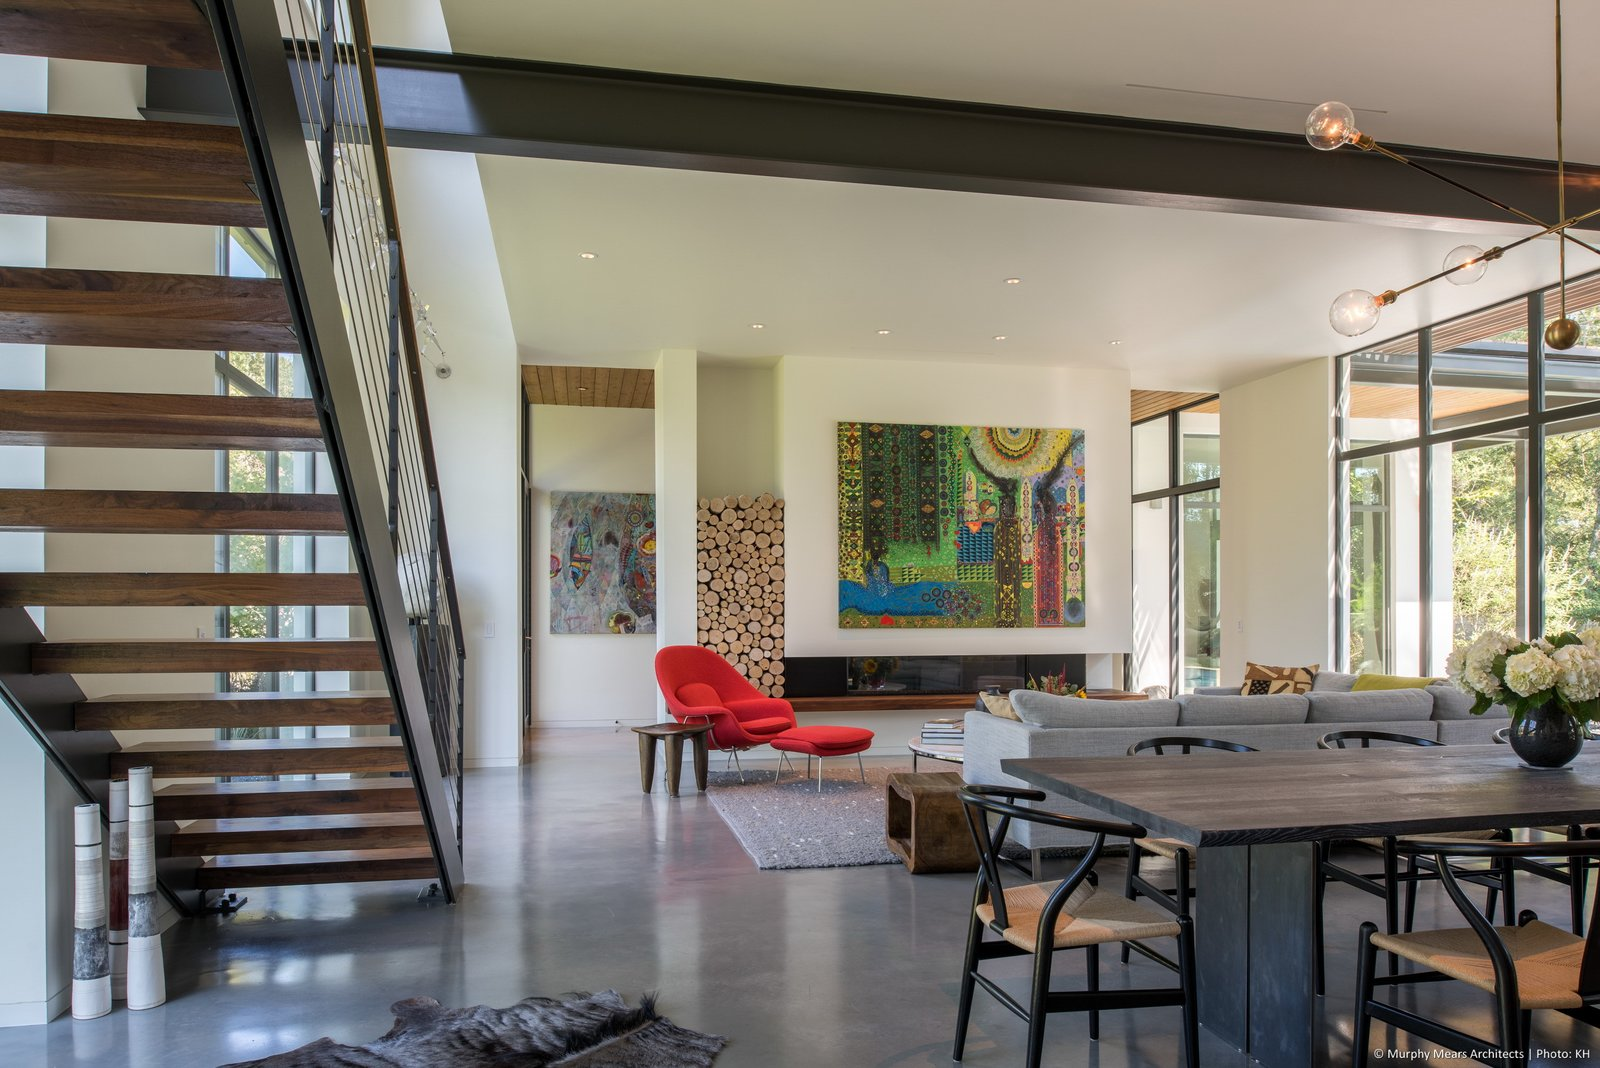 Best Living Ceiling Gas Burning Photos from Open House